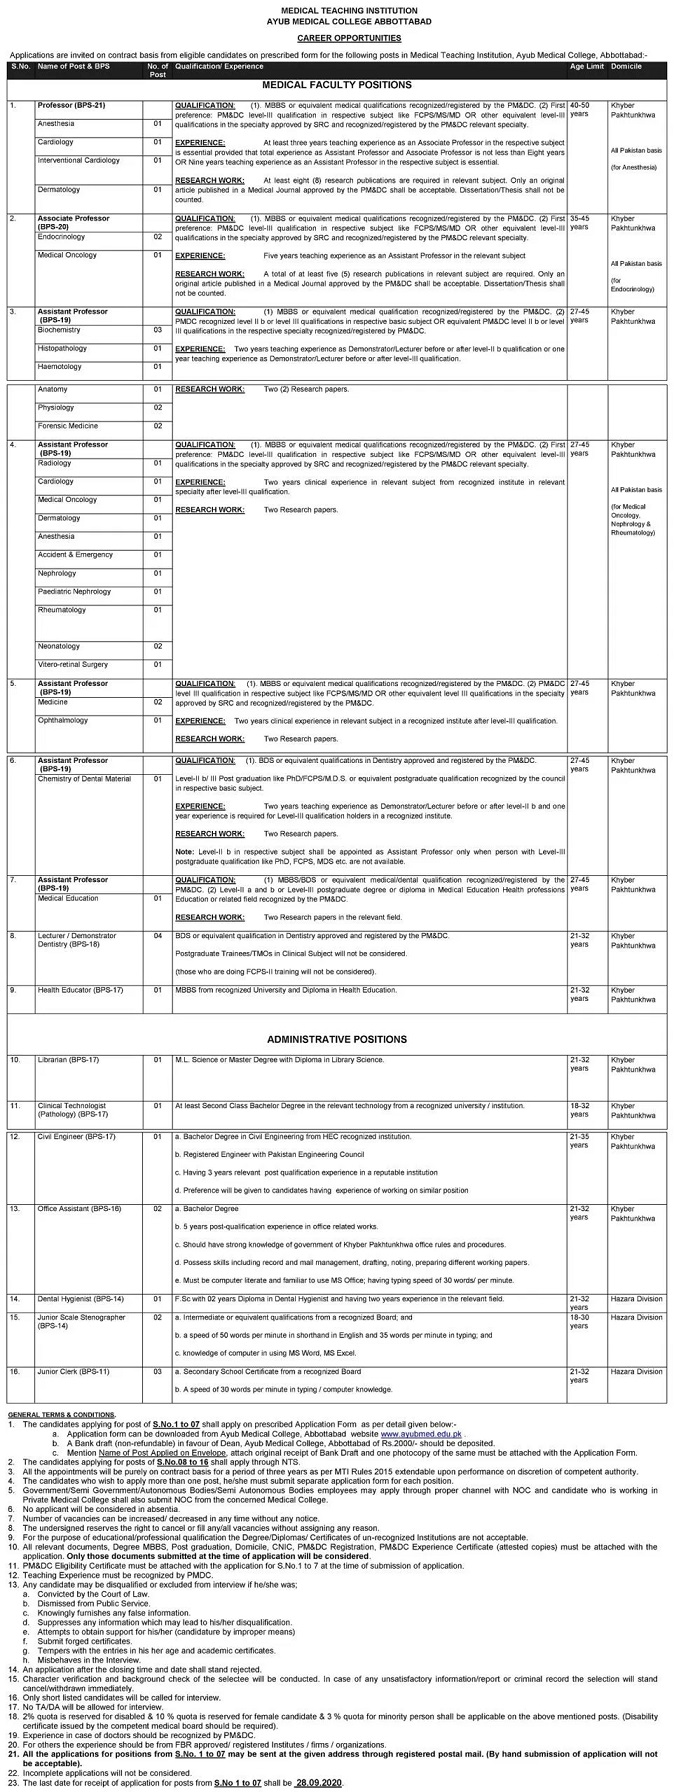 Ayub Medical College Medical Teaching Institution Jobs NTS Result